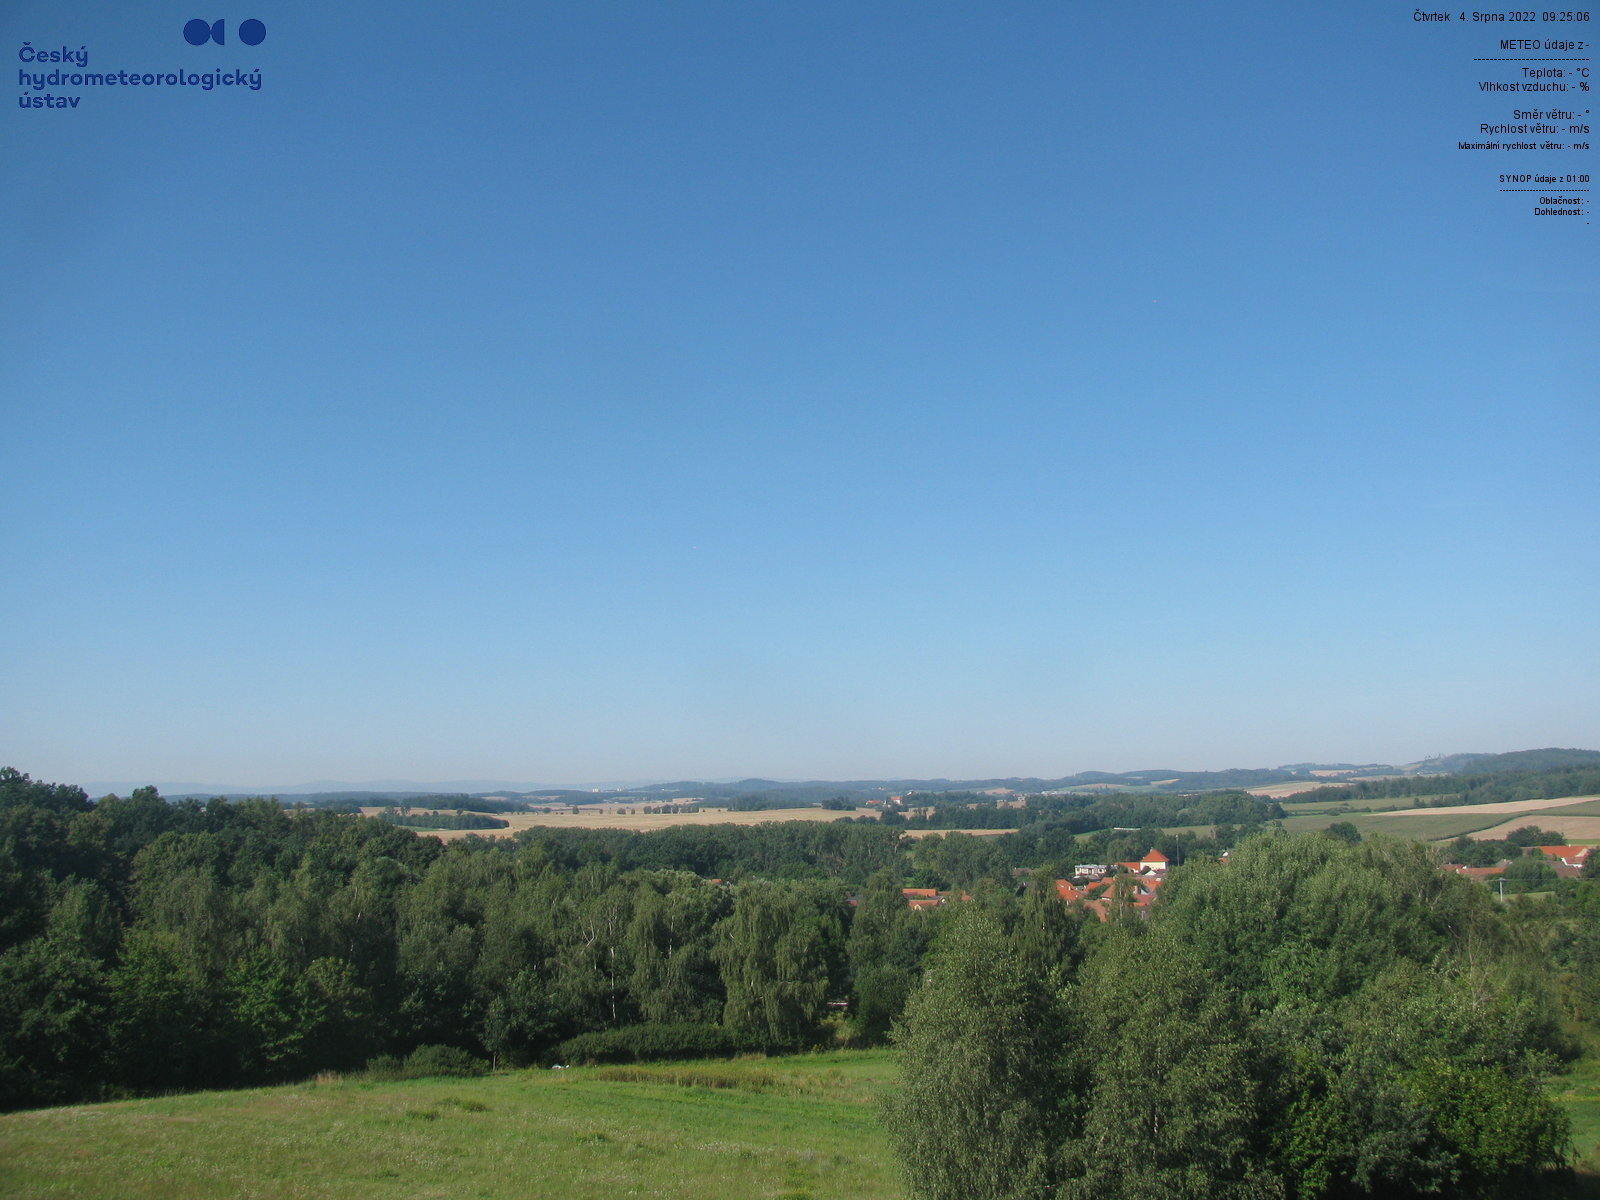 webcam AMS Kocelovice